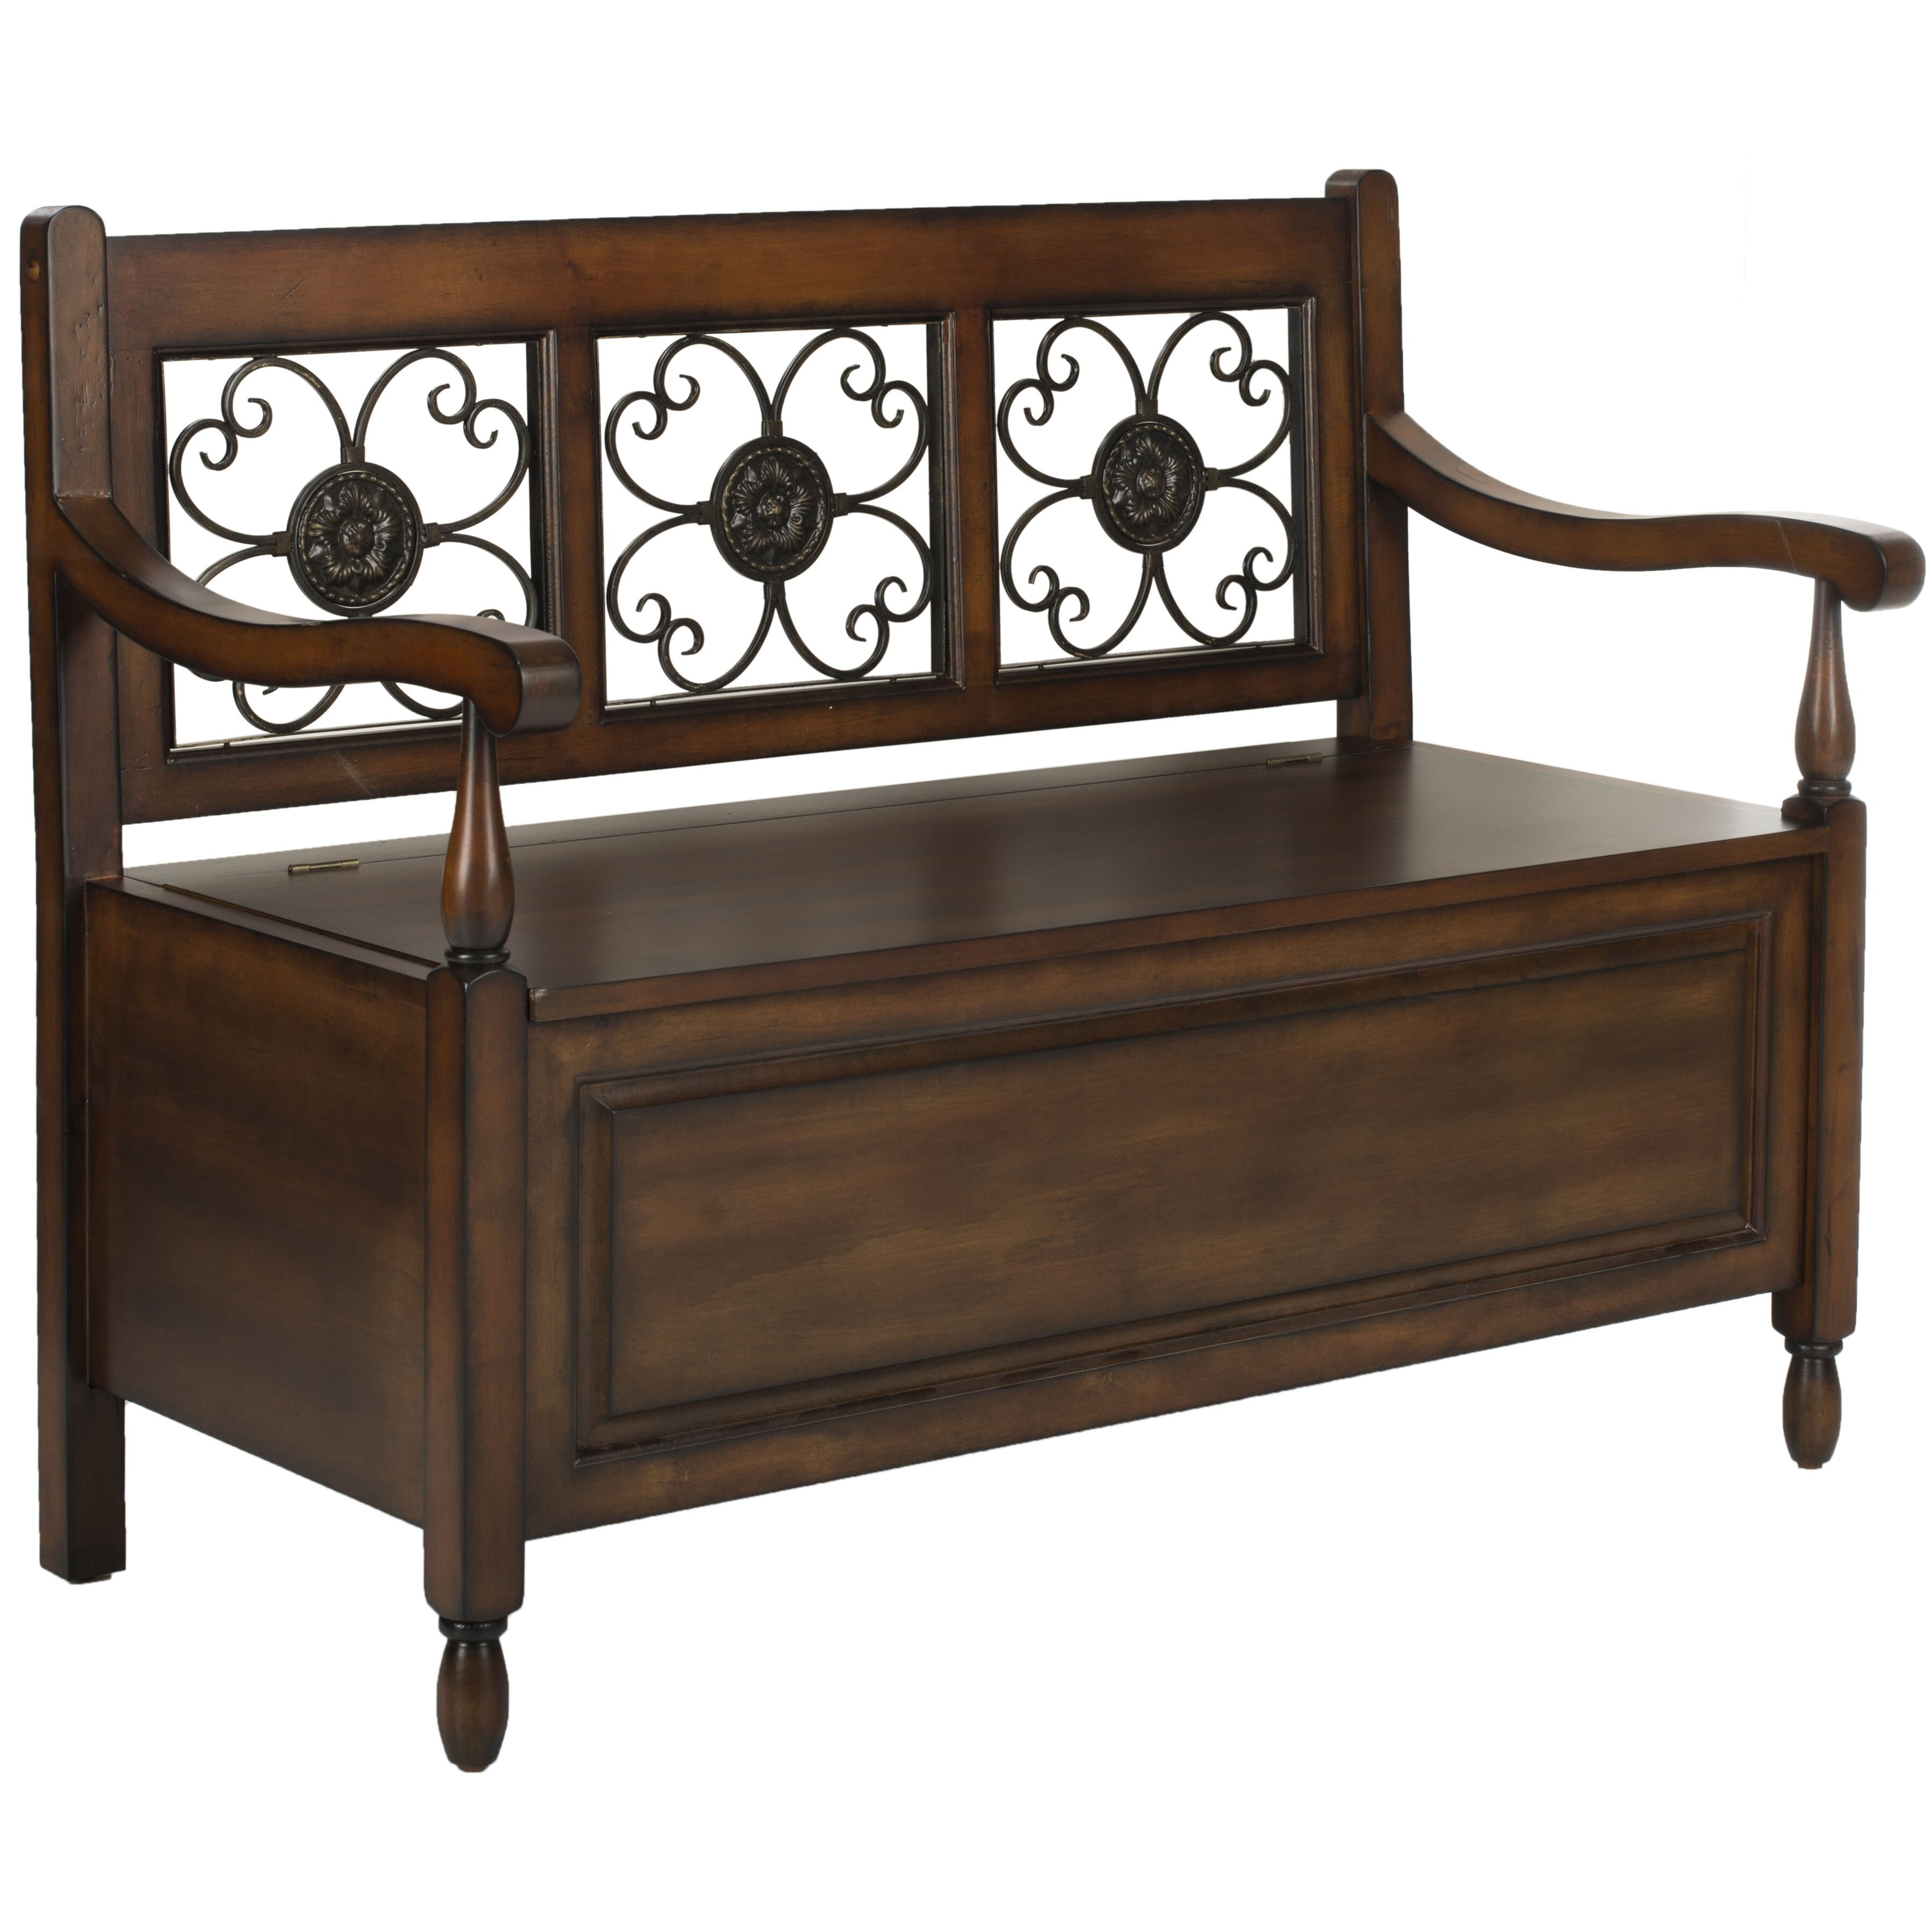 Safavieh Erica Wood Storage Entryway Bench Reviews Wayfair